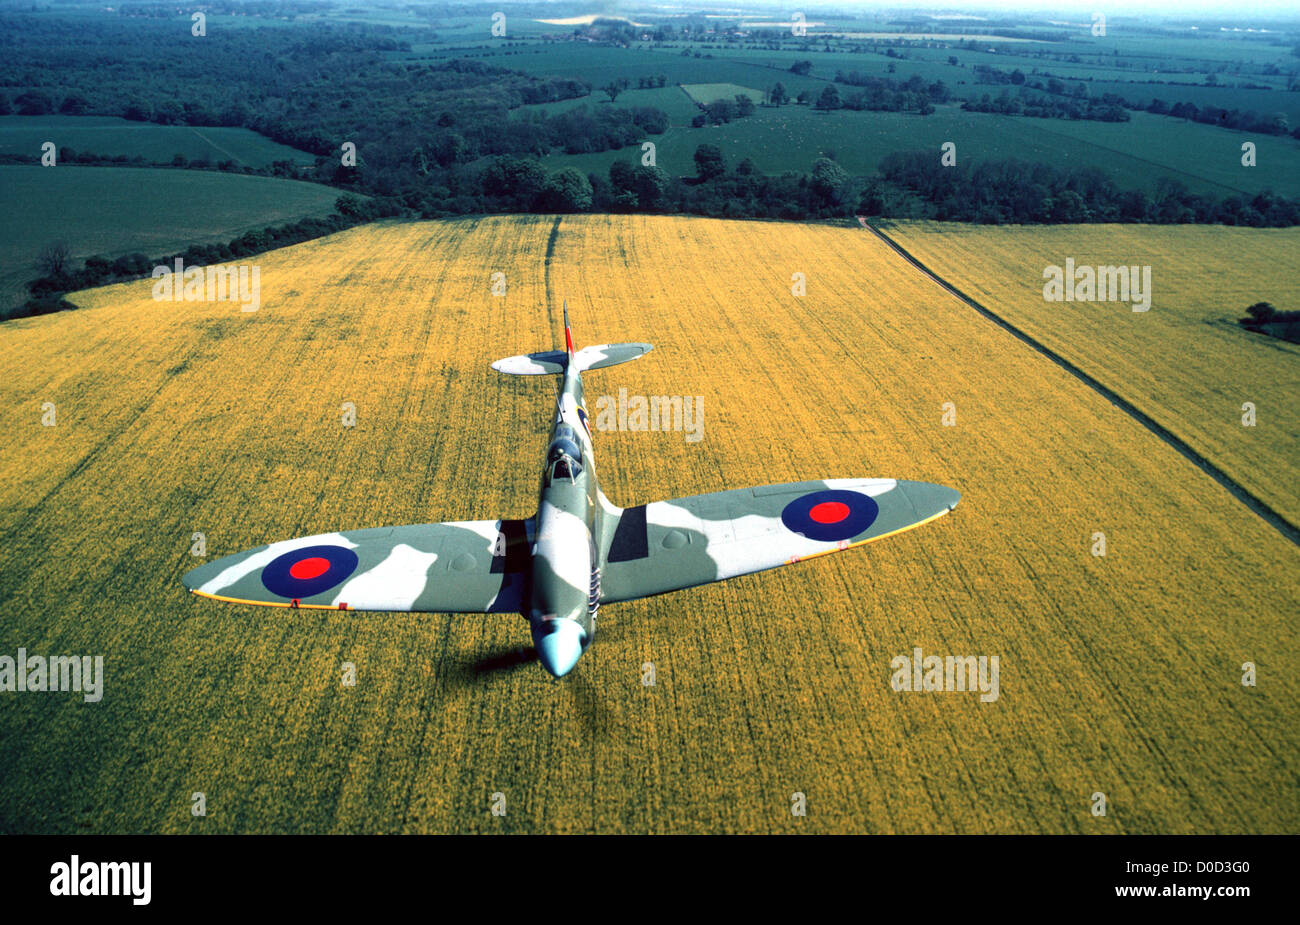 Spitfire fighter aircraft - Stock Image